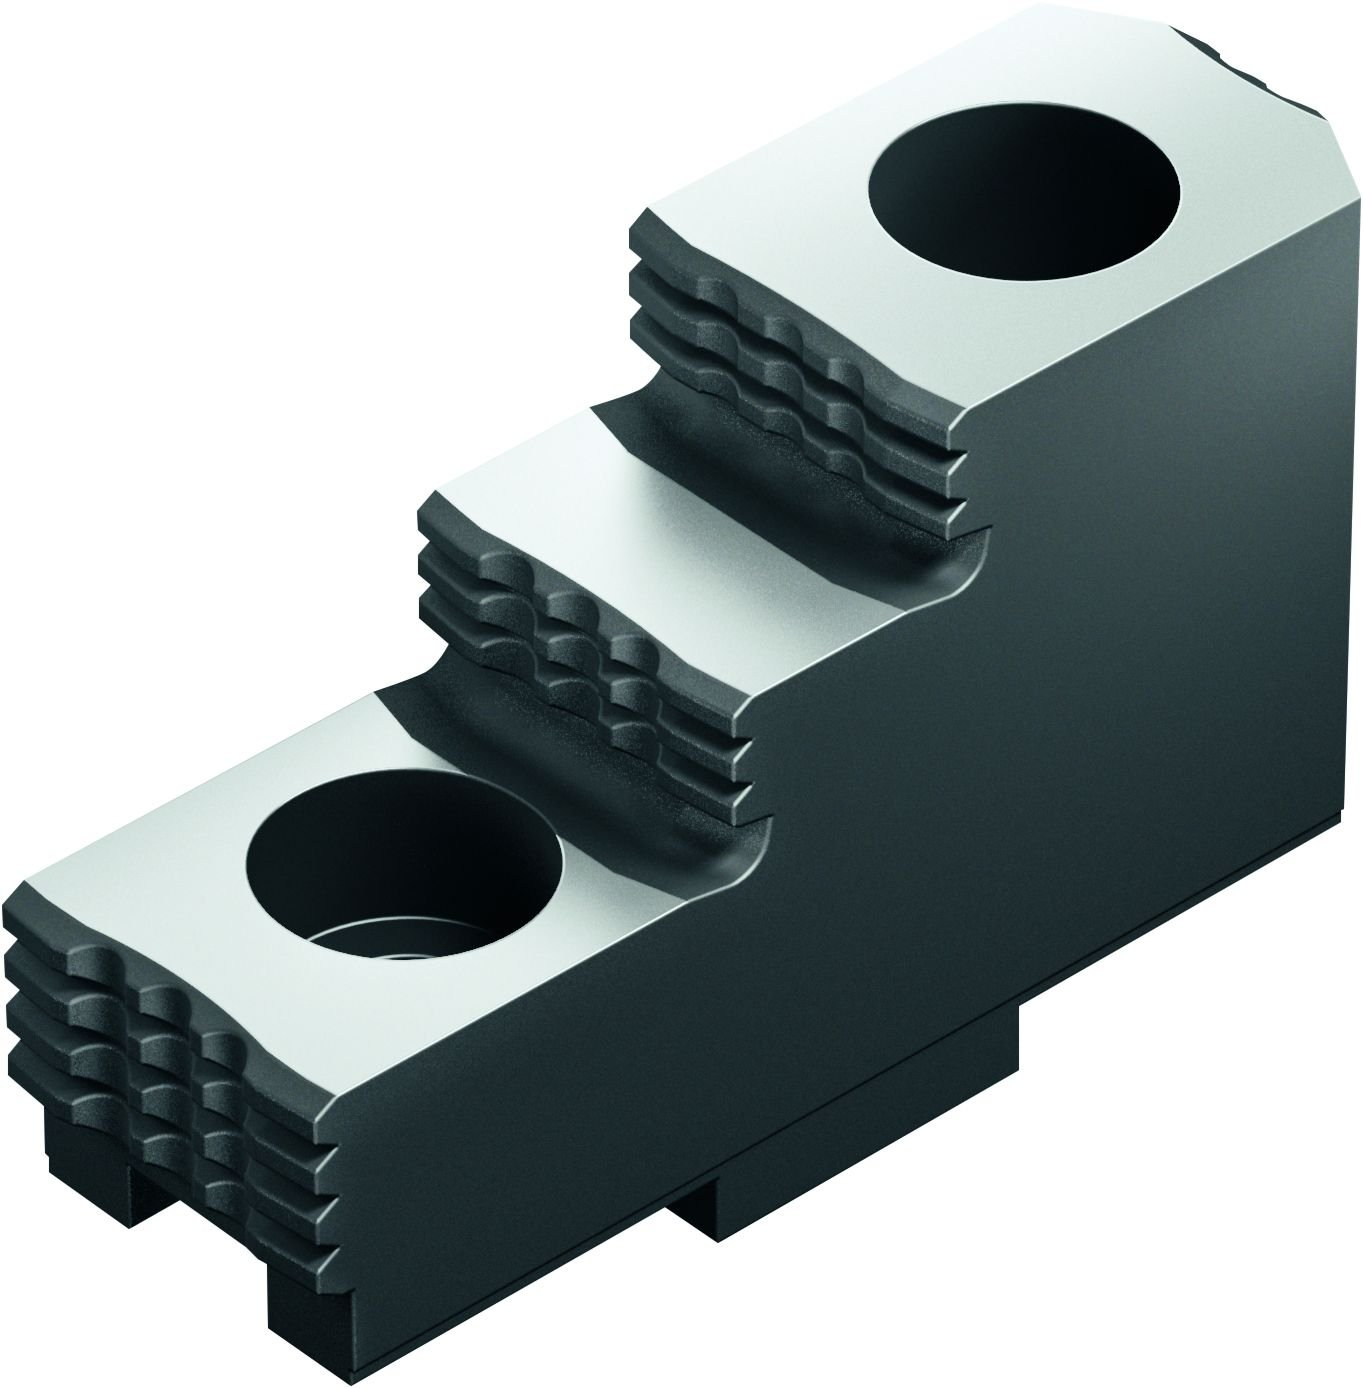 8 mm Groove Width 20 mm x 36.5 mm x 63 mm SCHUNK 0155100 Steel Hard Stepped Top Jaws Pack of 3